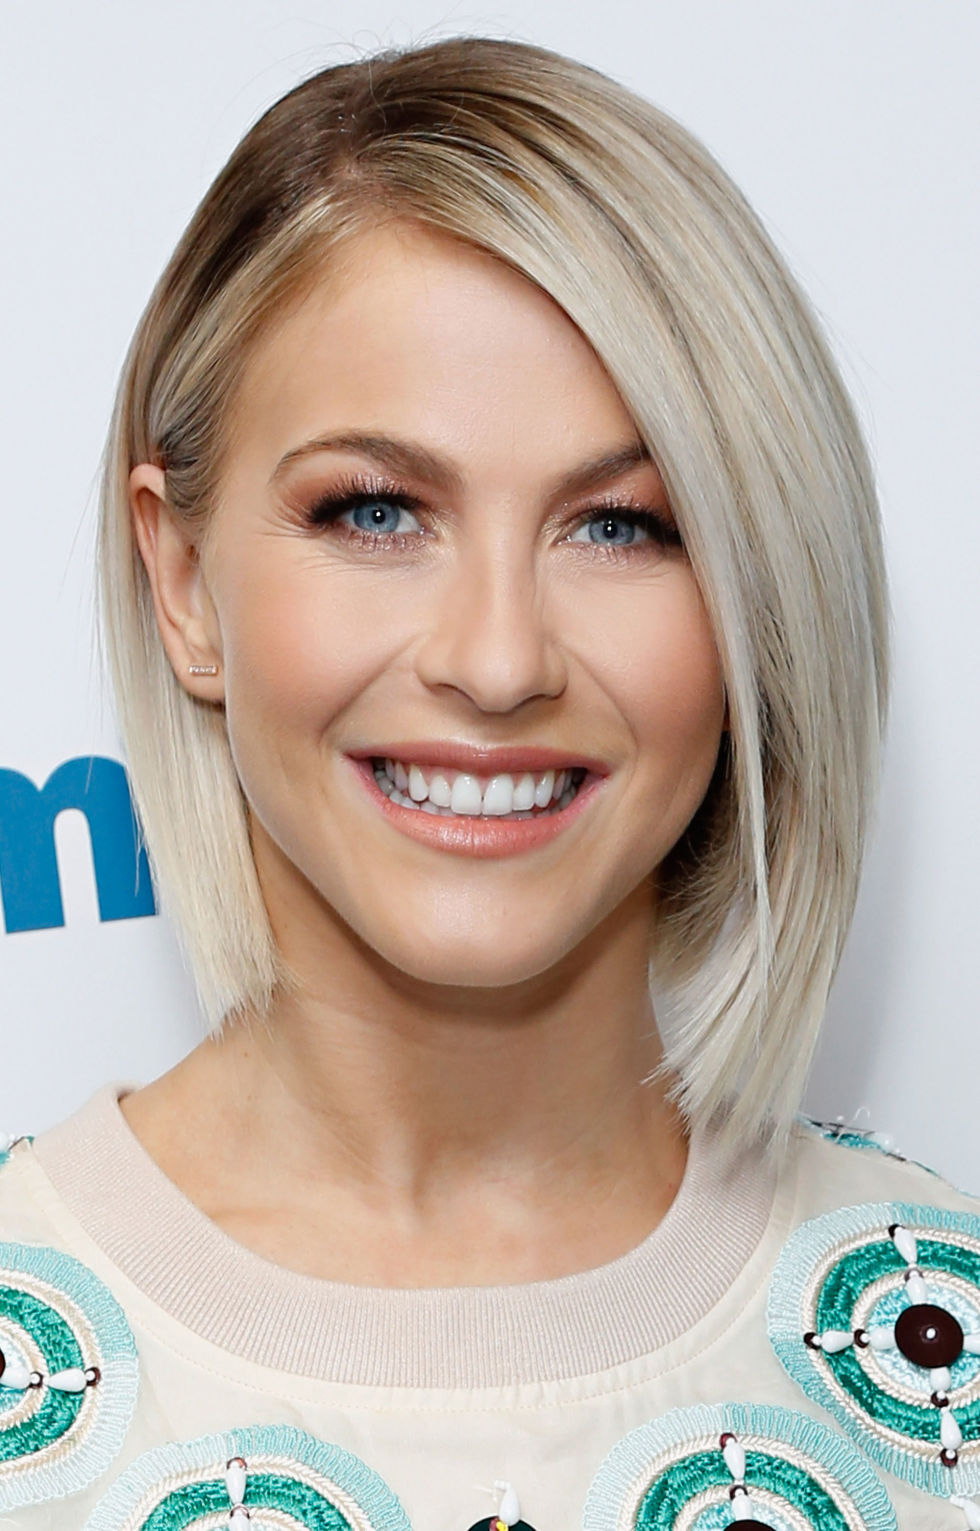 Astounding 35 Hairstyles For Round Faces Best Haircuts For Round Face Shape Short Hairstyles Gunalazisus